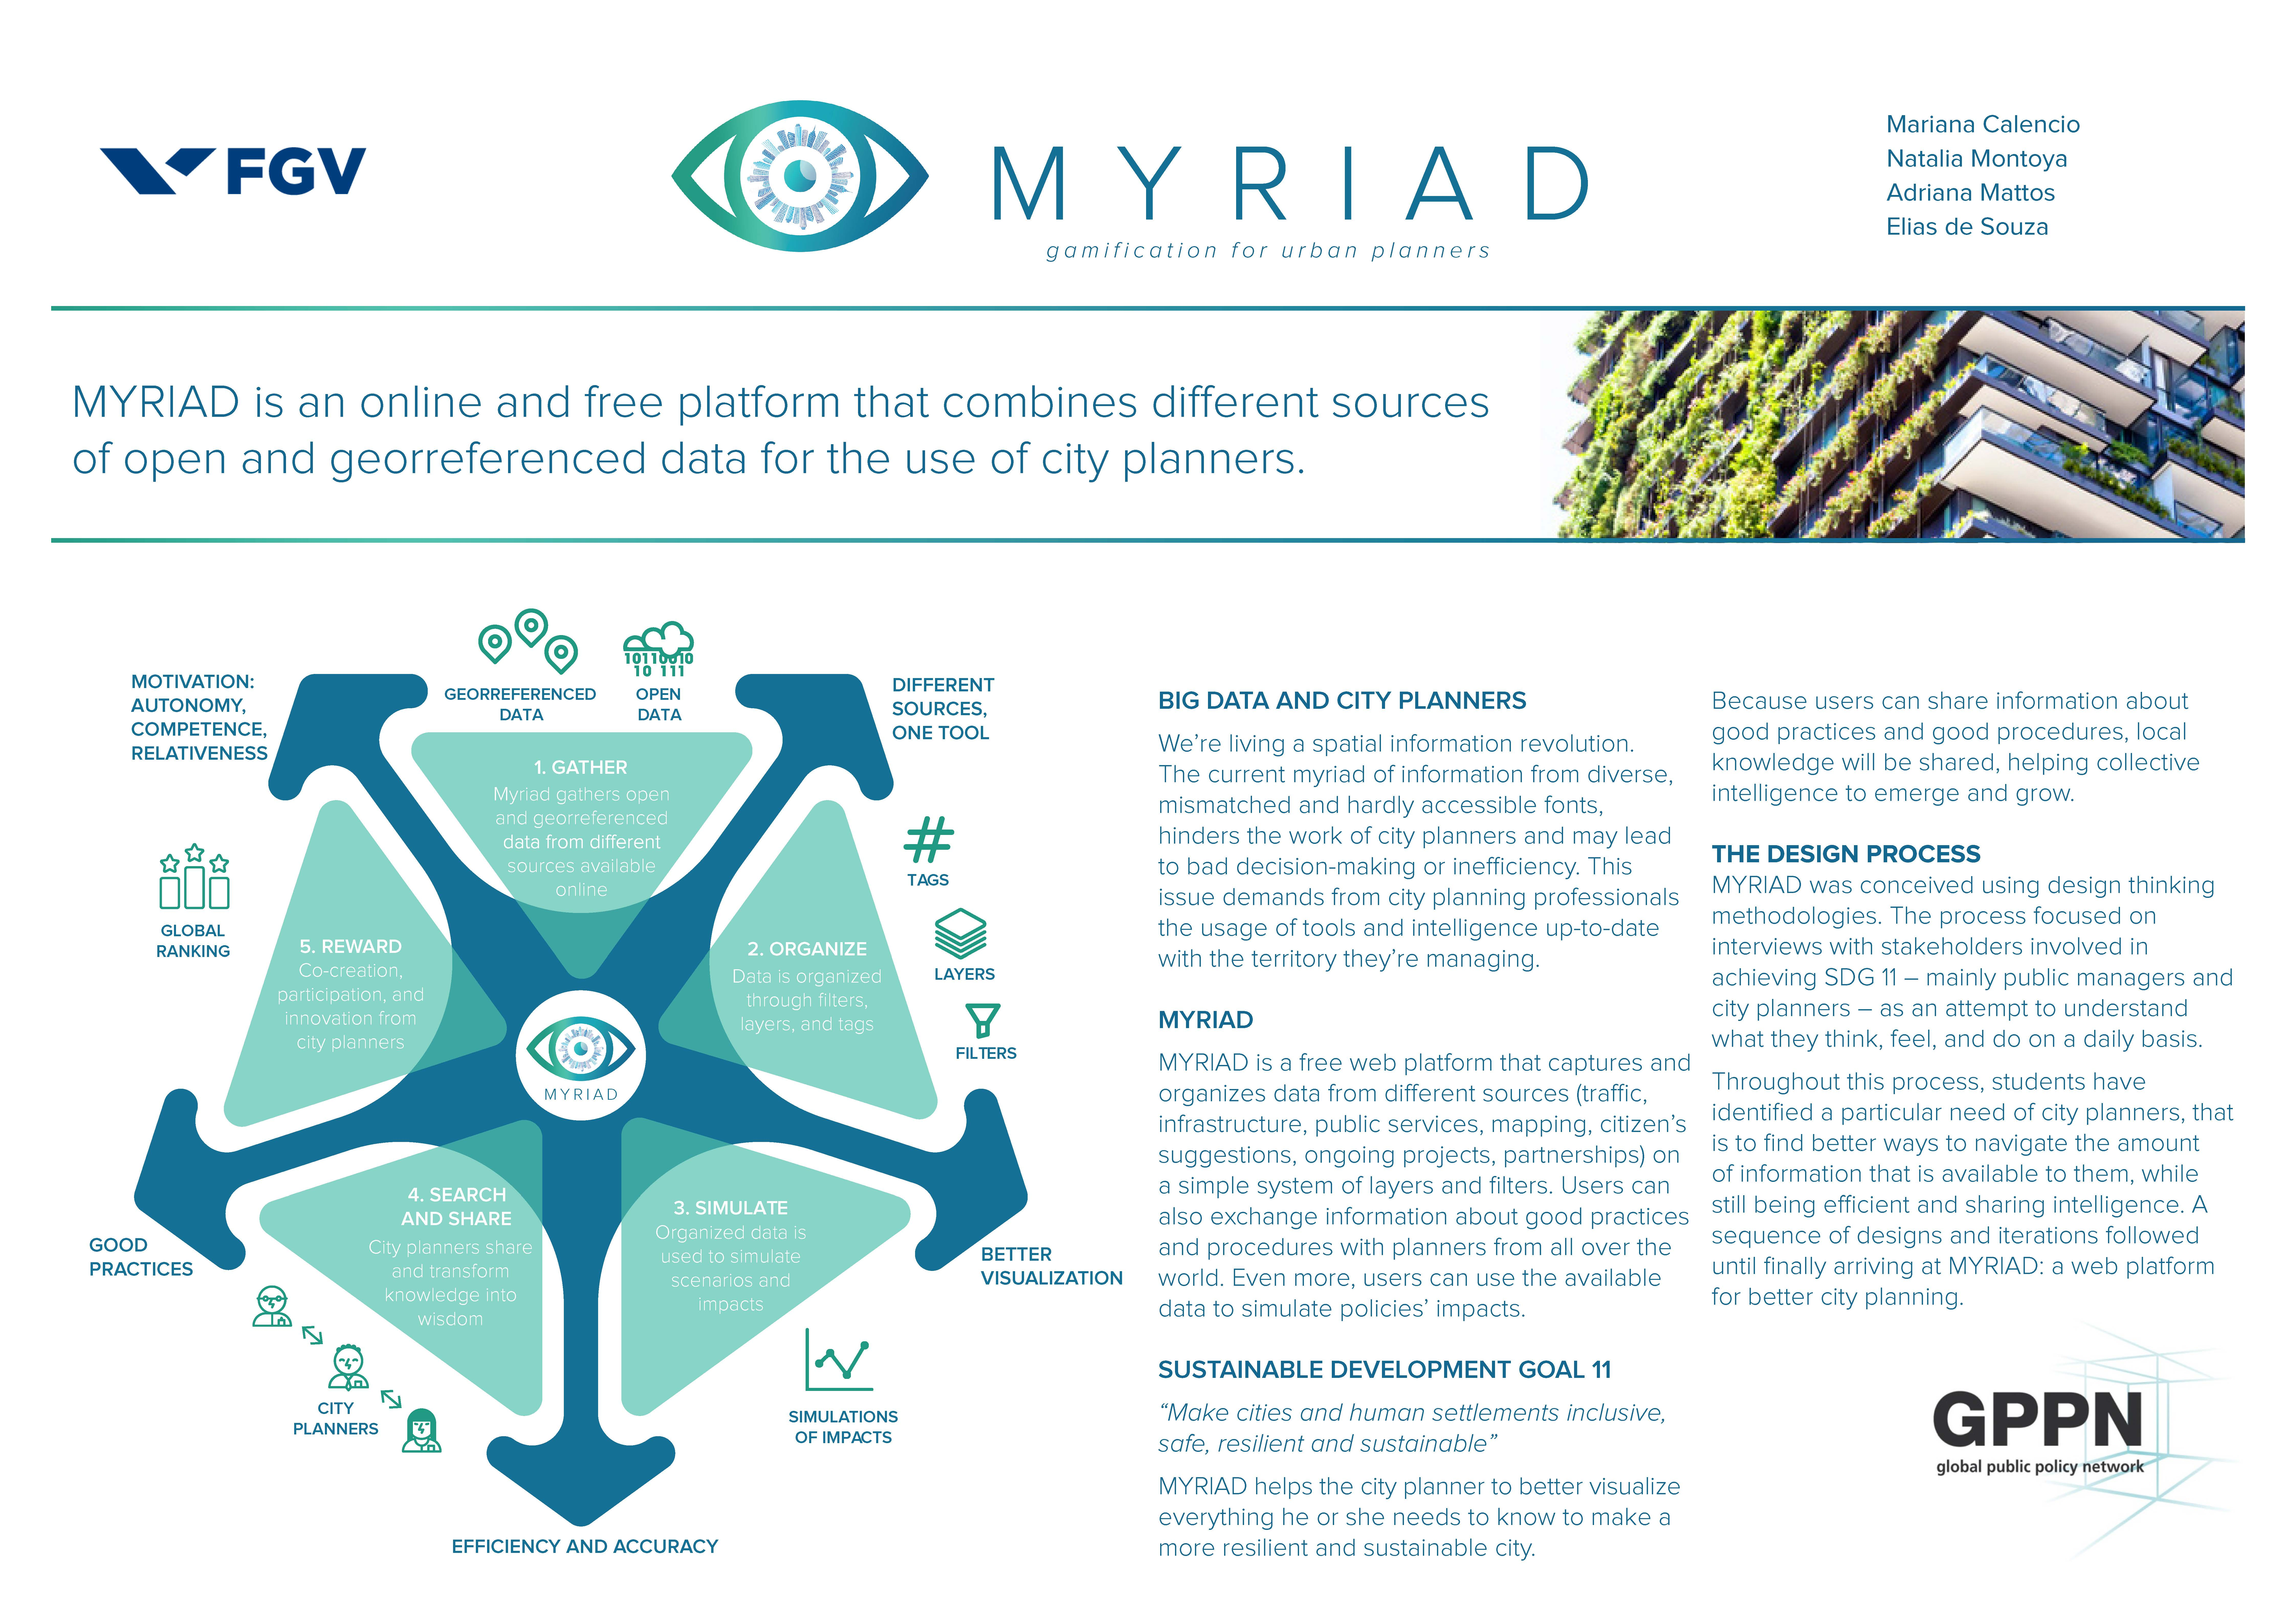 MYRIAD: Gamification for Urban Planners | Global Public Policy ...